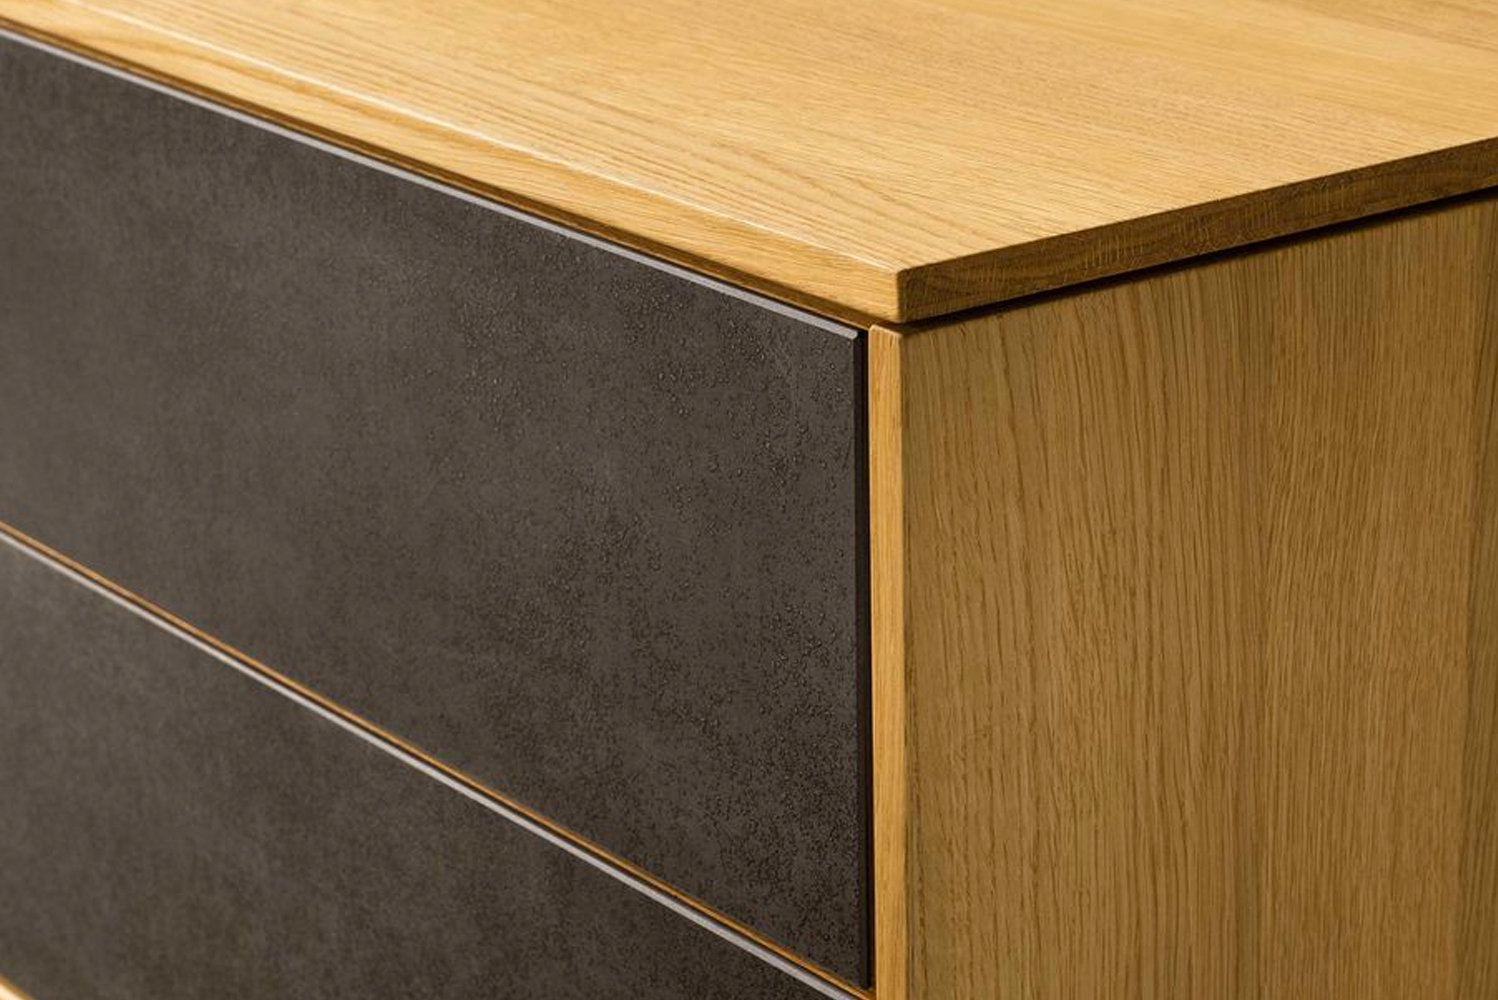 The Filigno has soft-close drawers, push-front doors, an end-grained edgeband, and 12mm-thick, three-layer top board.